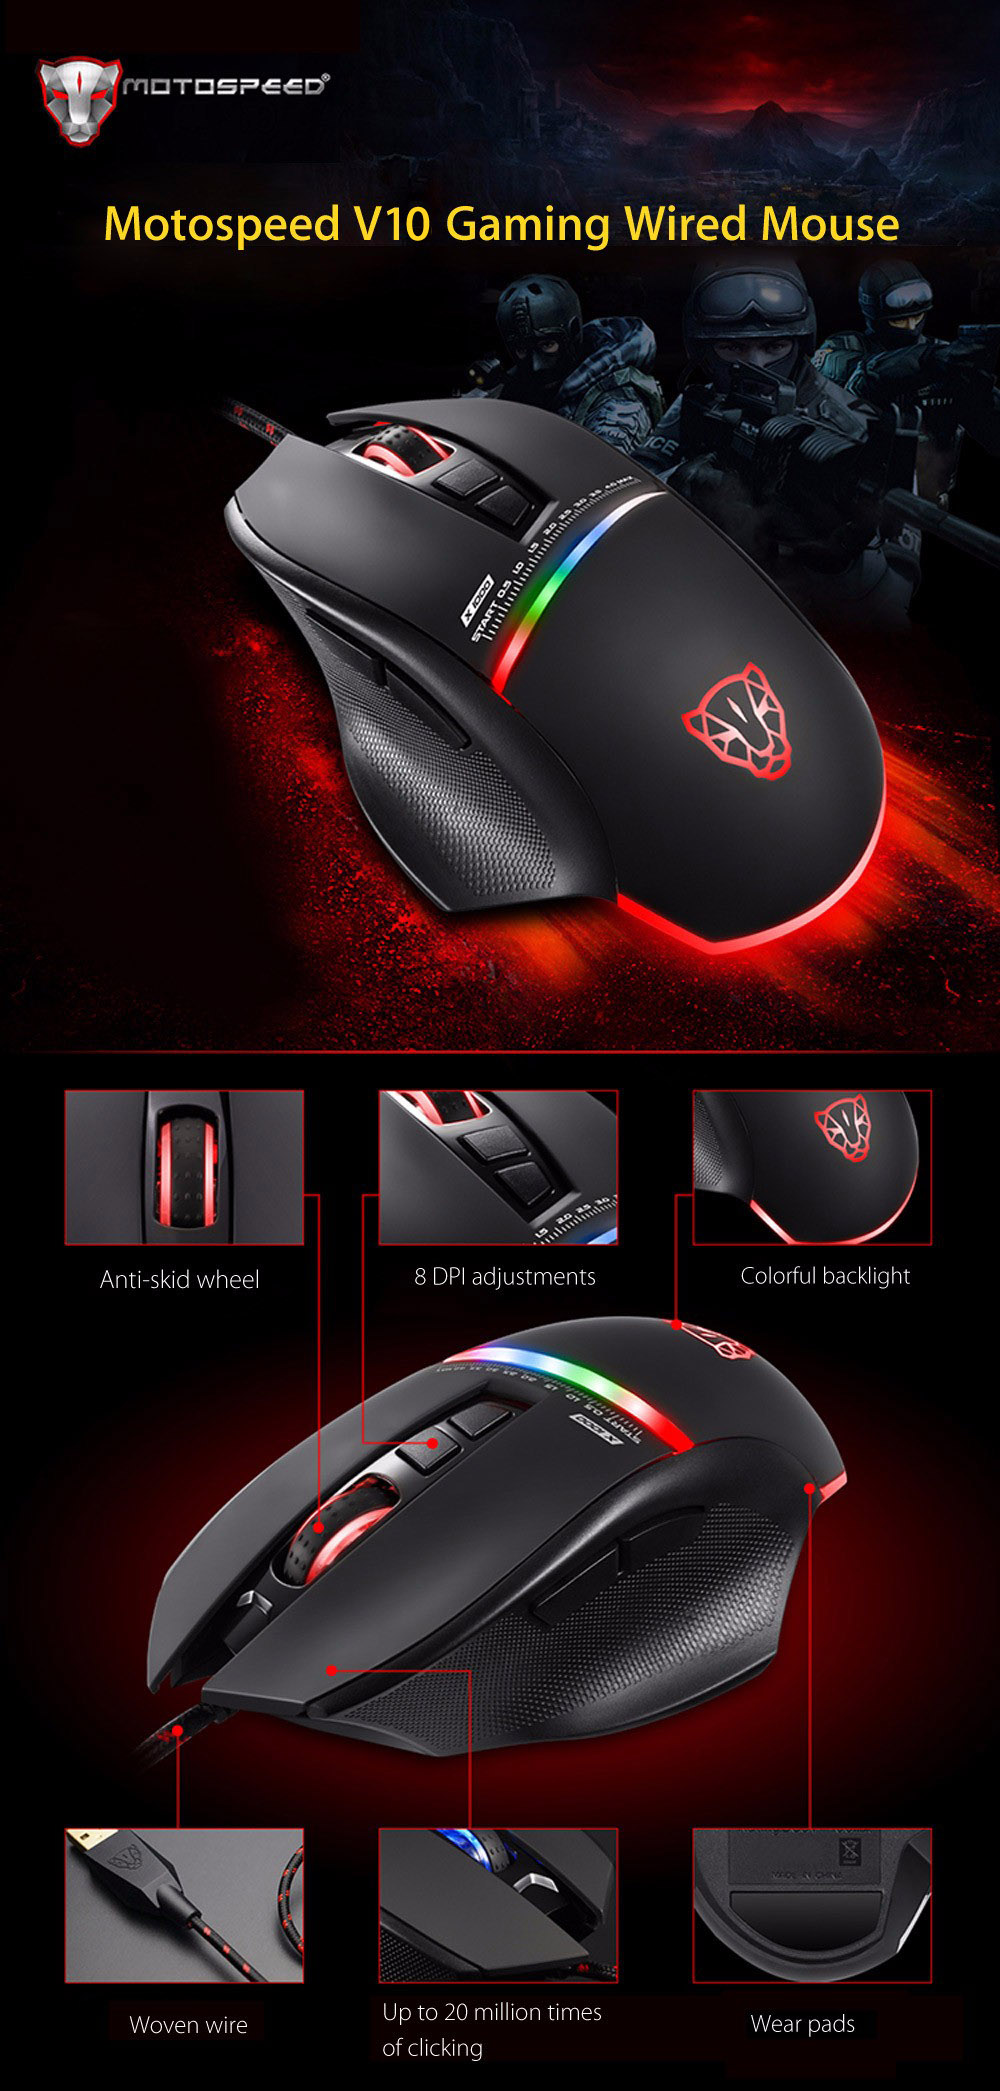 Motospeed V10 USB Gaming Wired Mouse with LED Backlight- Black